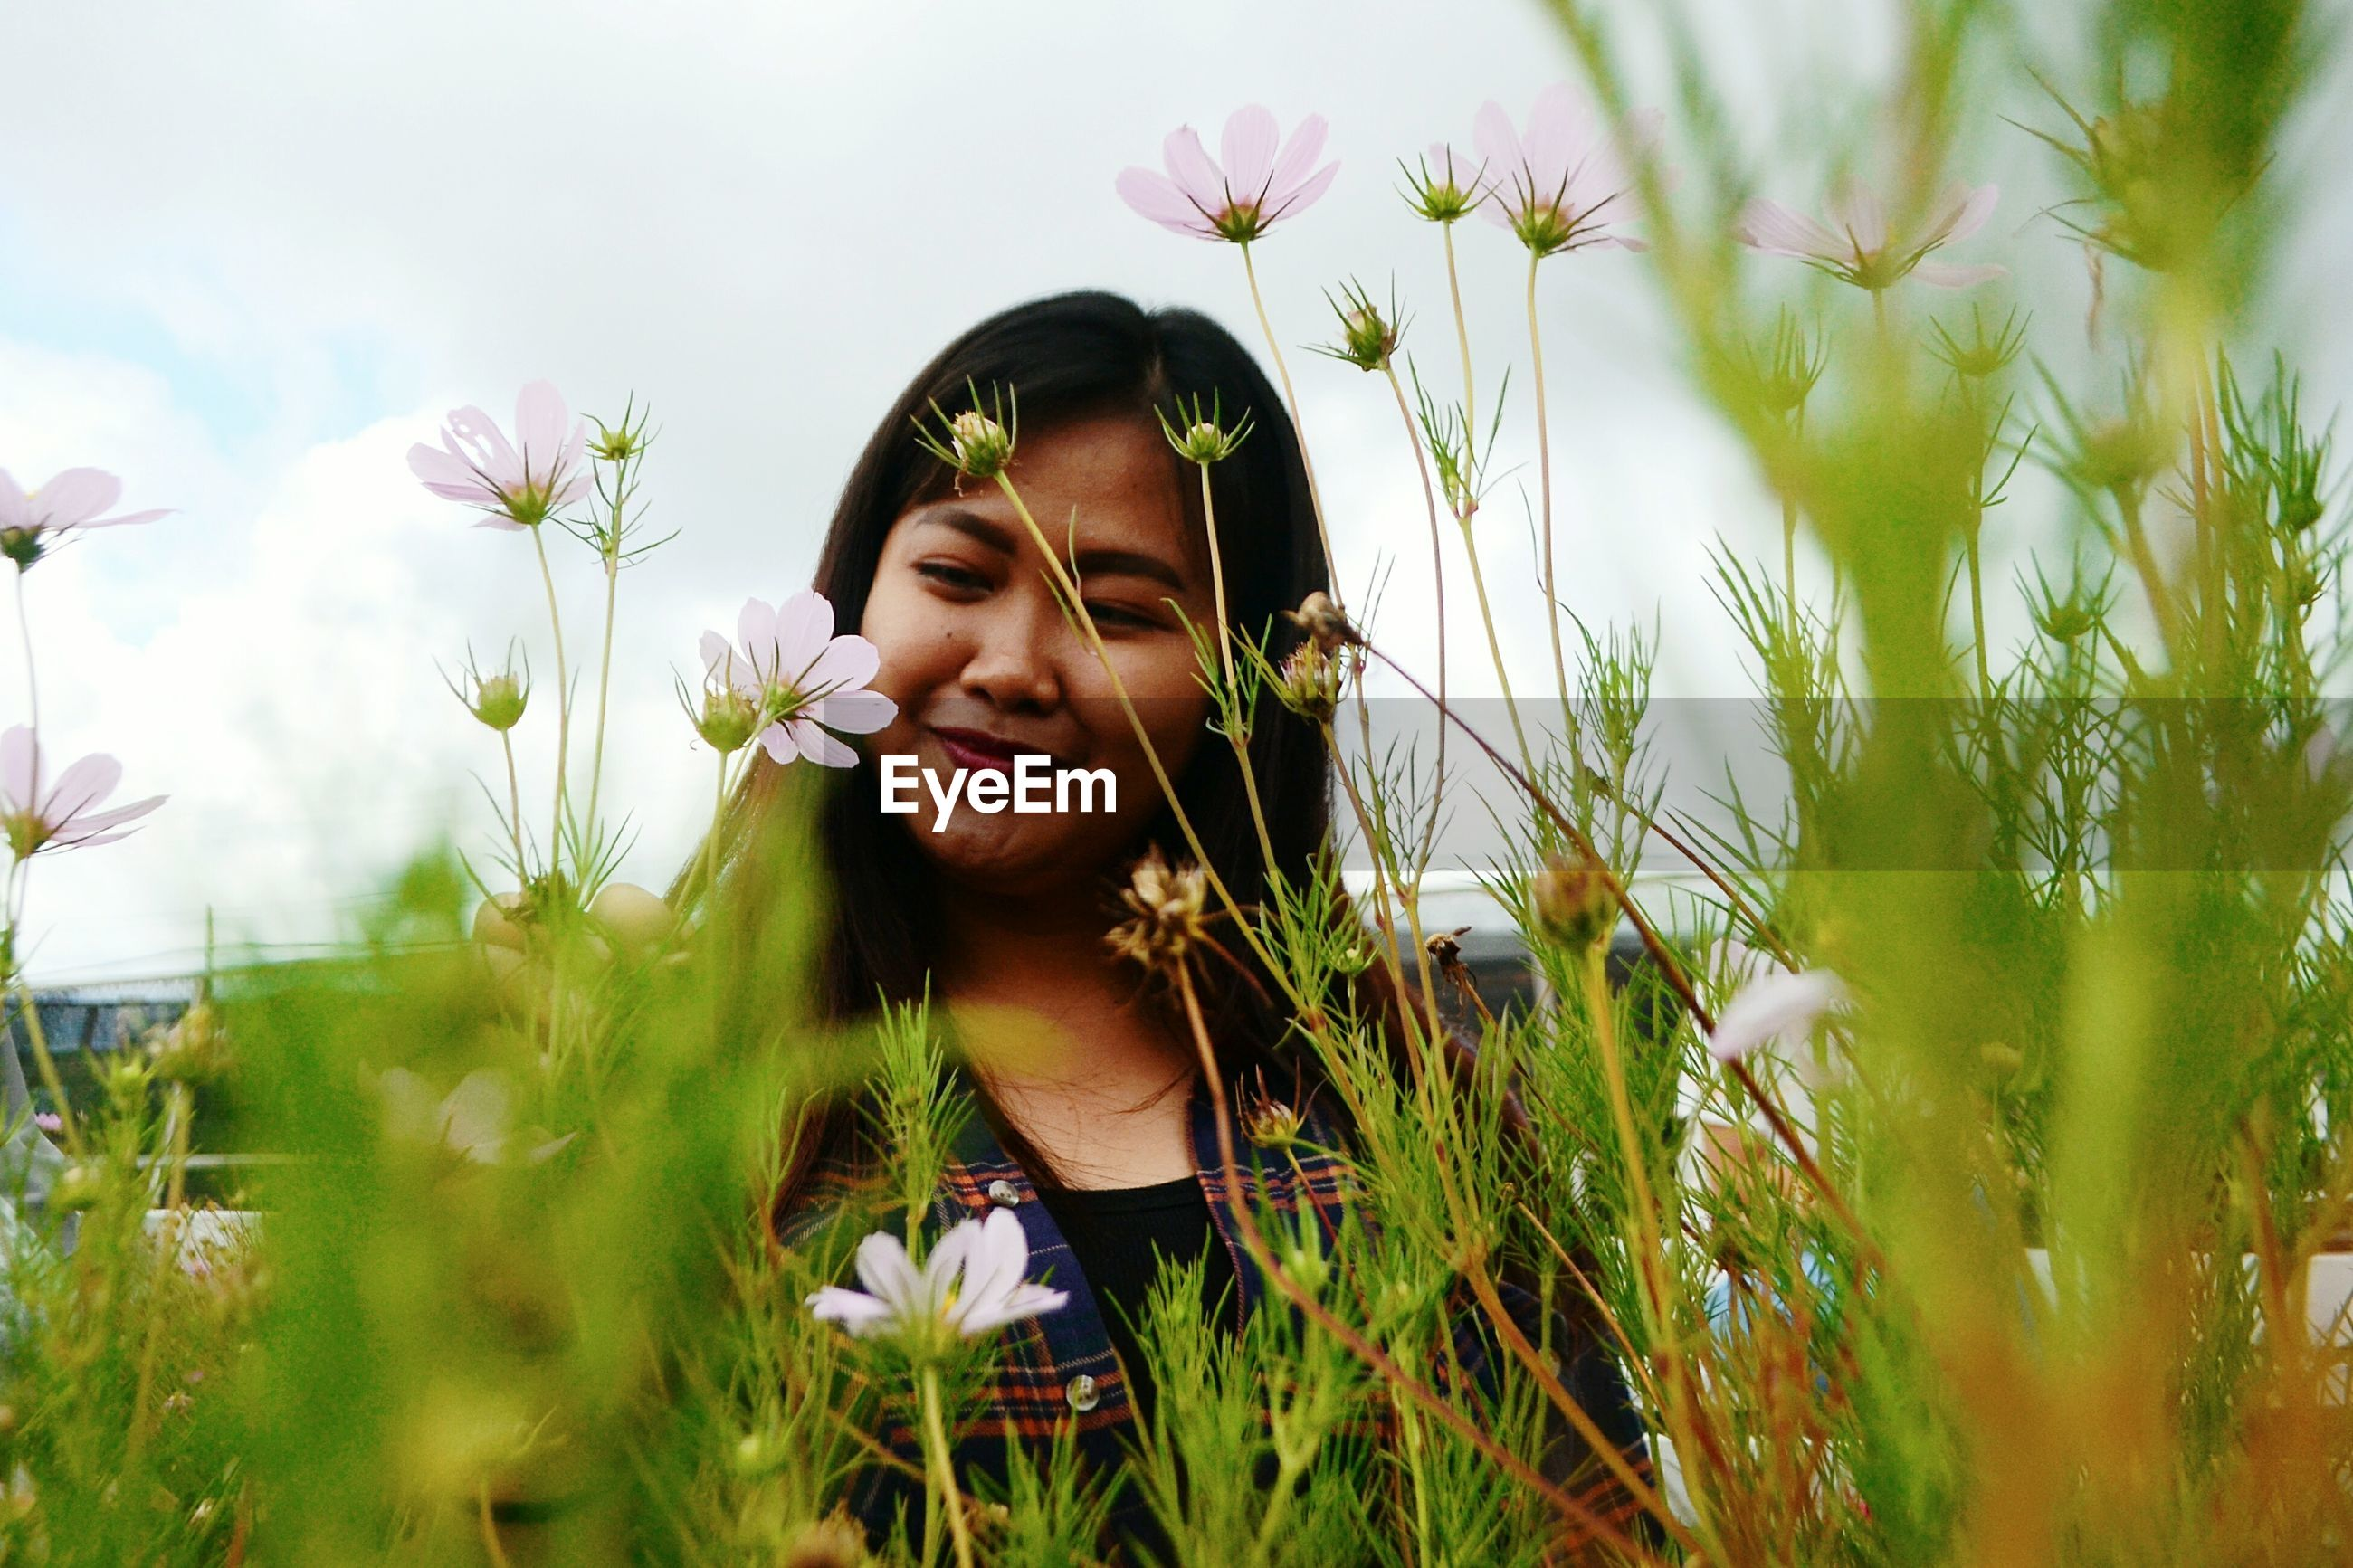 PORTRAIT OF BEAUTIFUL YOUNG WOMAN ON FIELD BY FLOWERING PLANTS